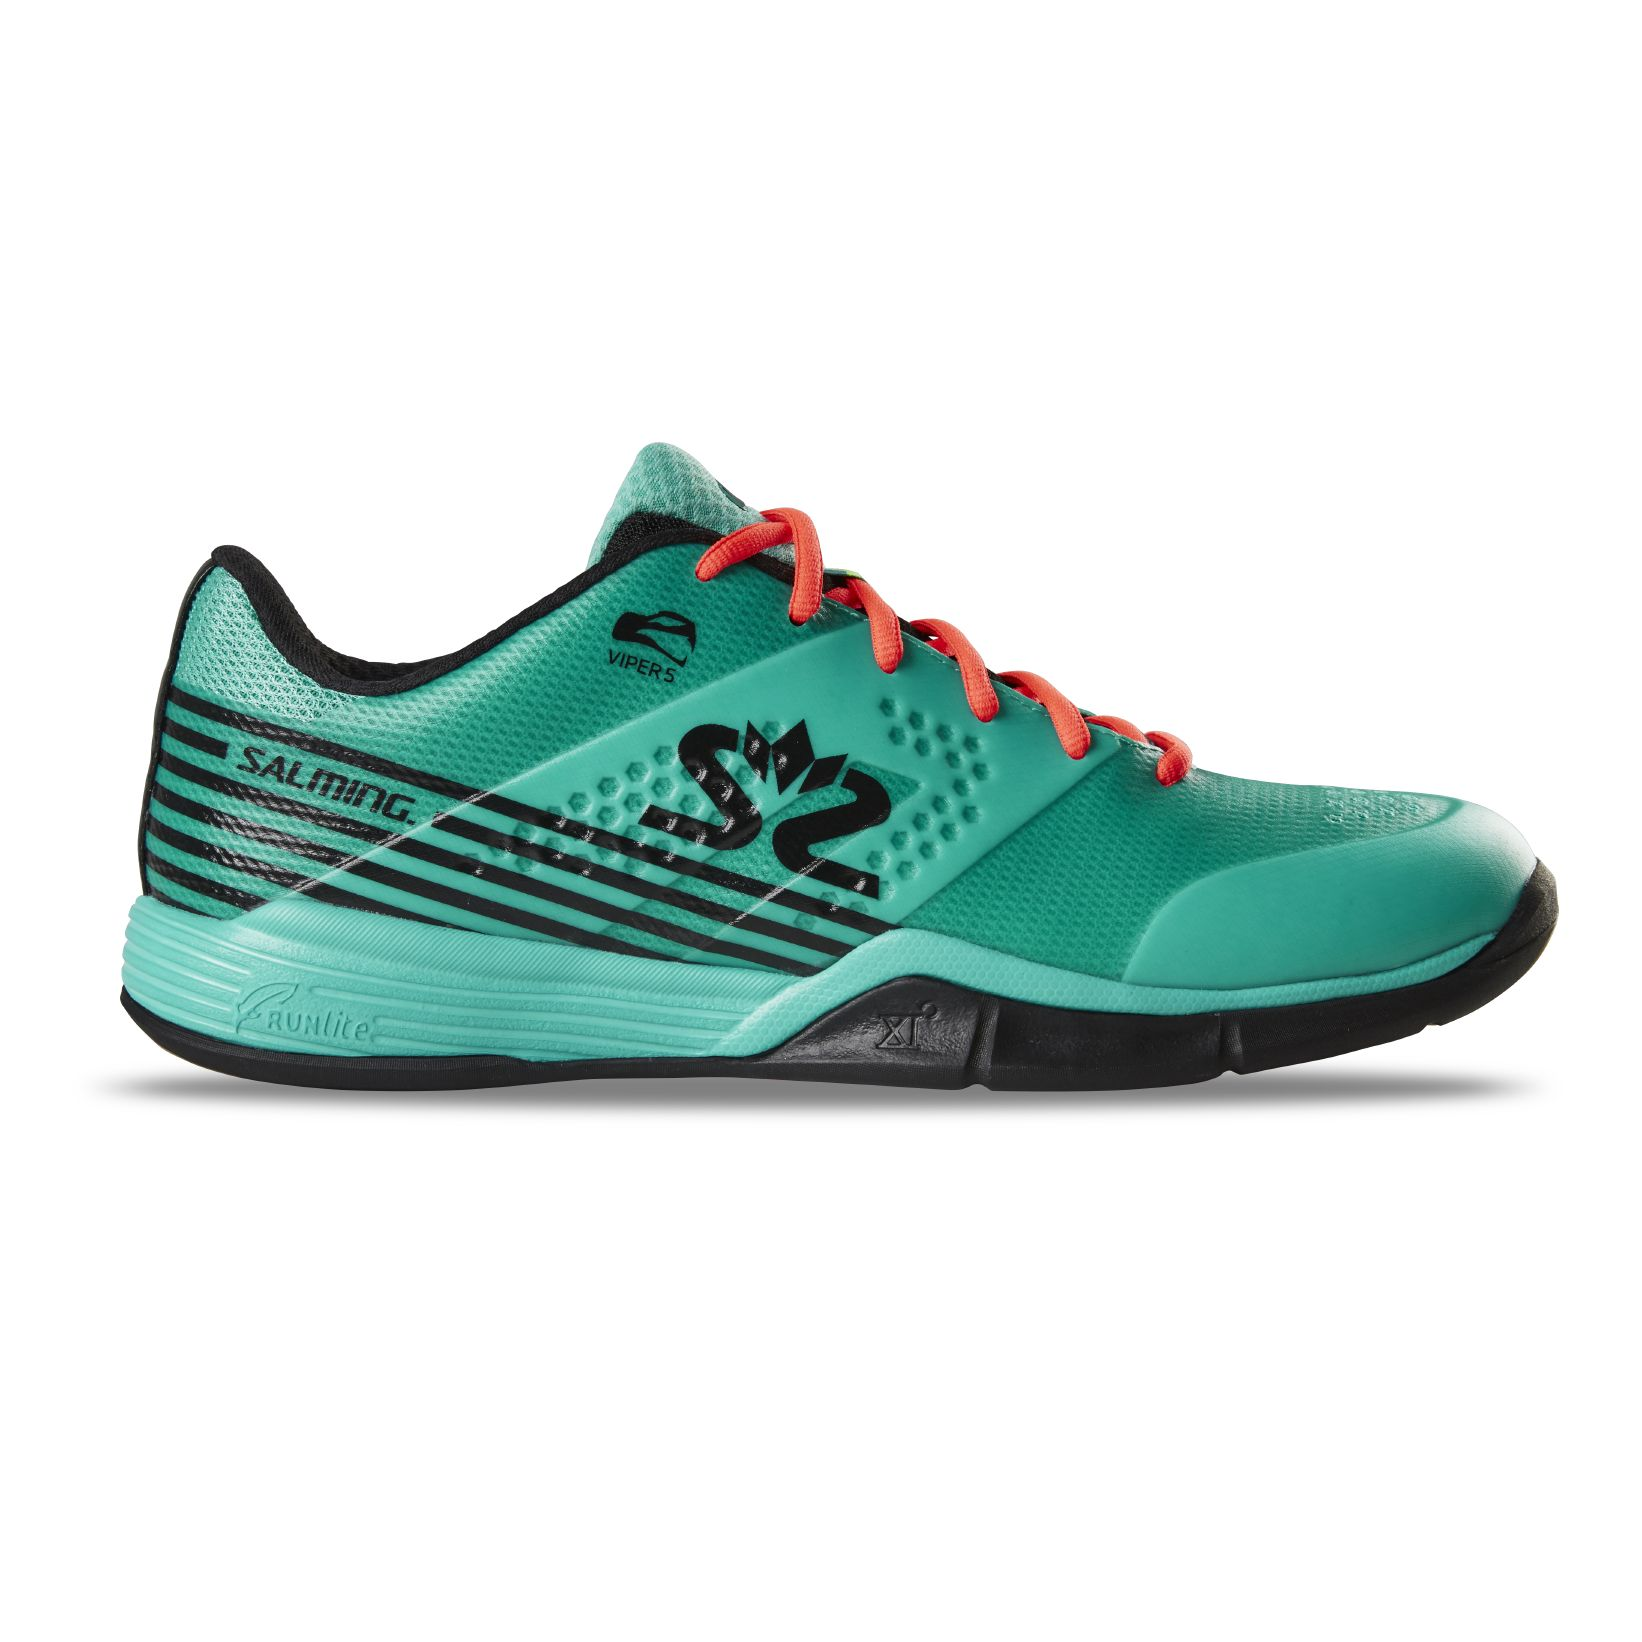 Salming Viper 5 Shoe Men Turquoise/Black 10 UK - 45 1/3 EUR - 29 cm